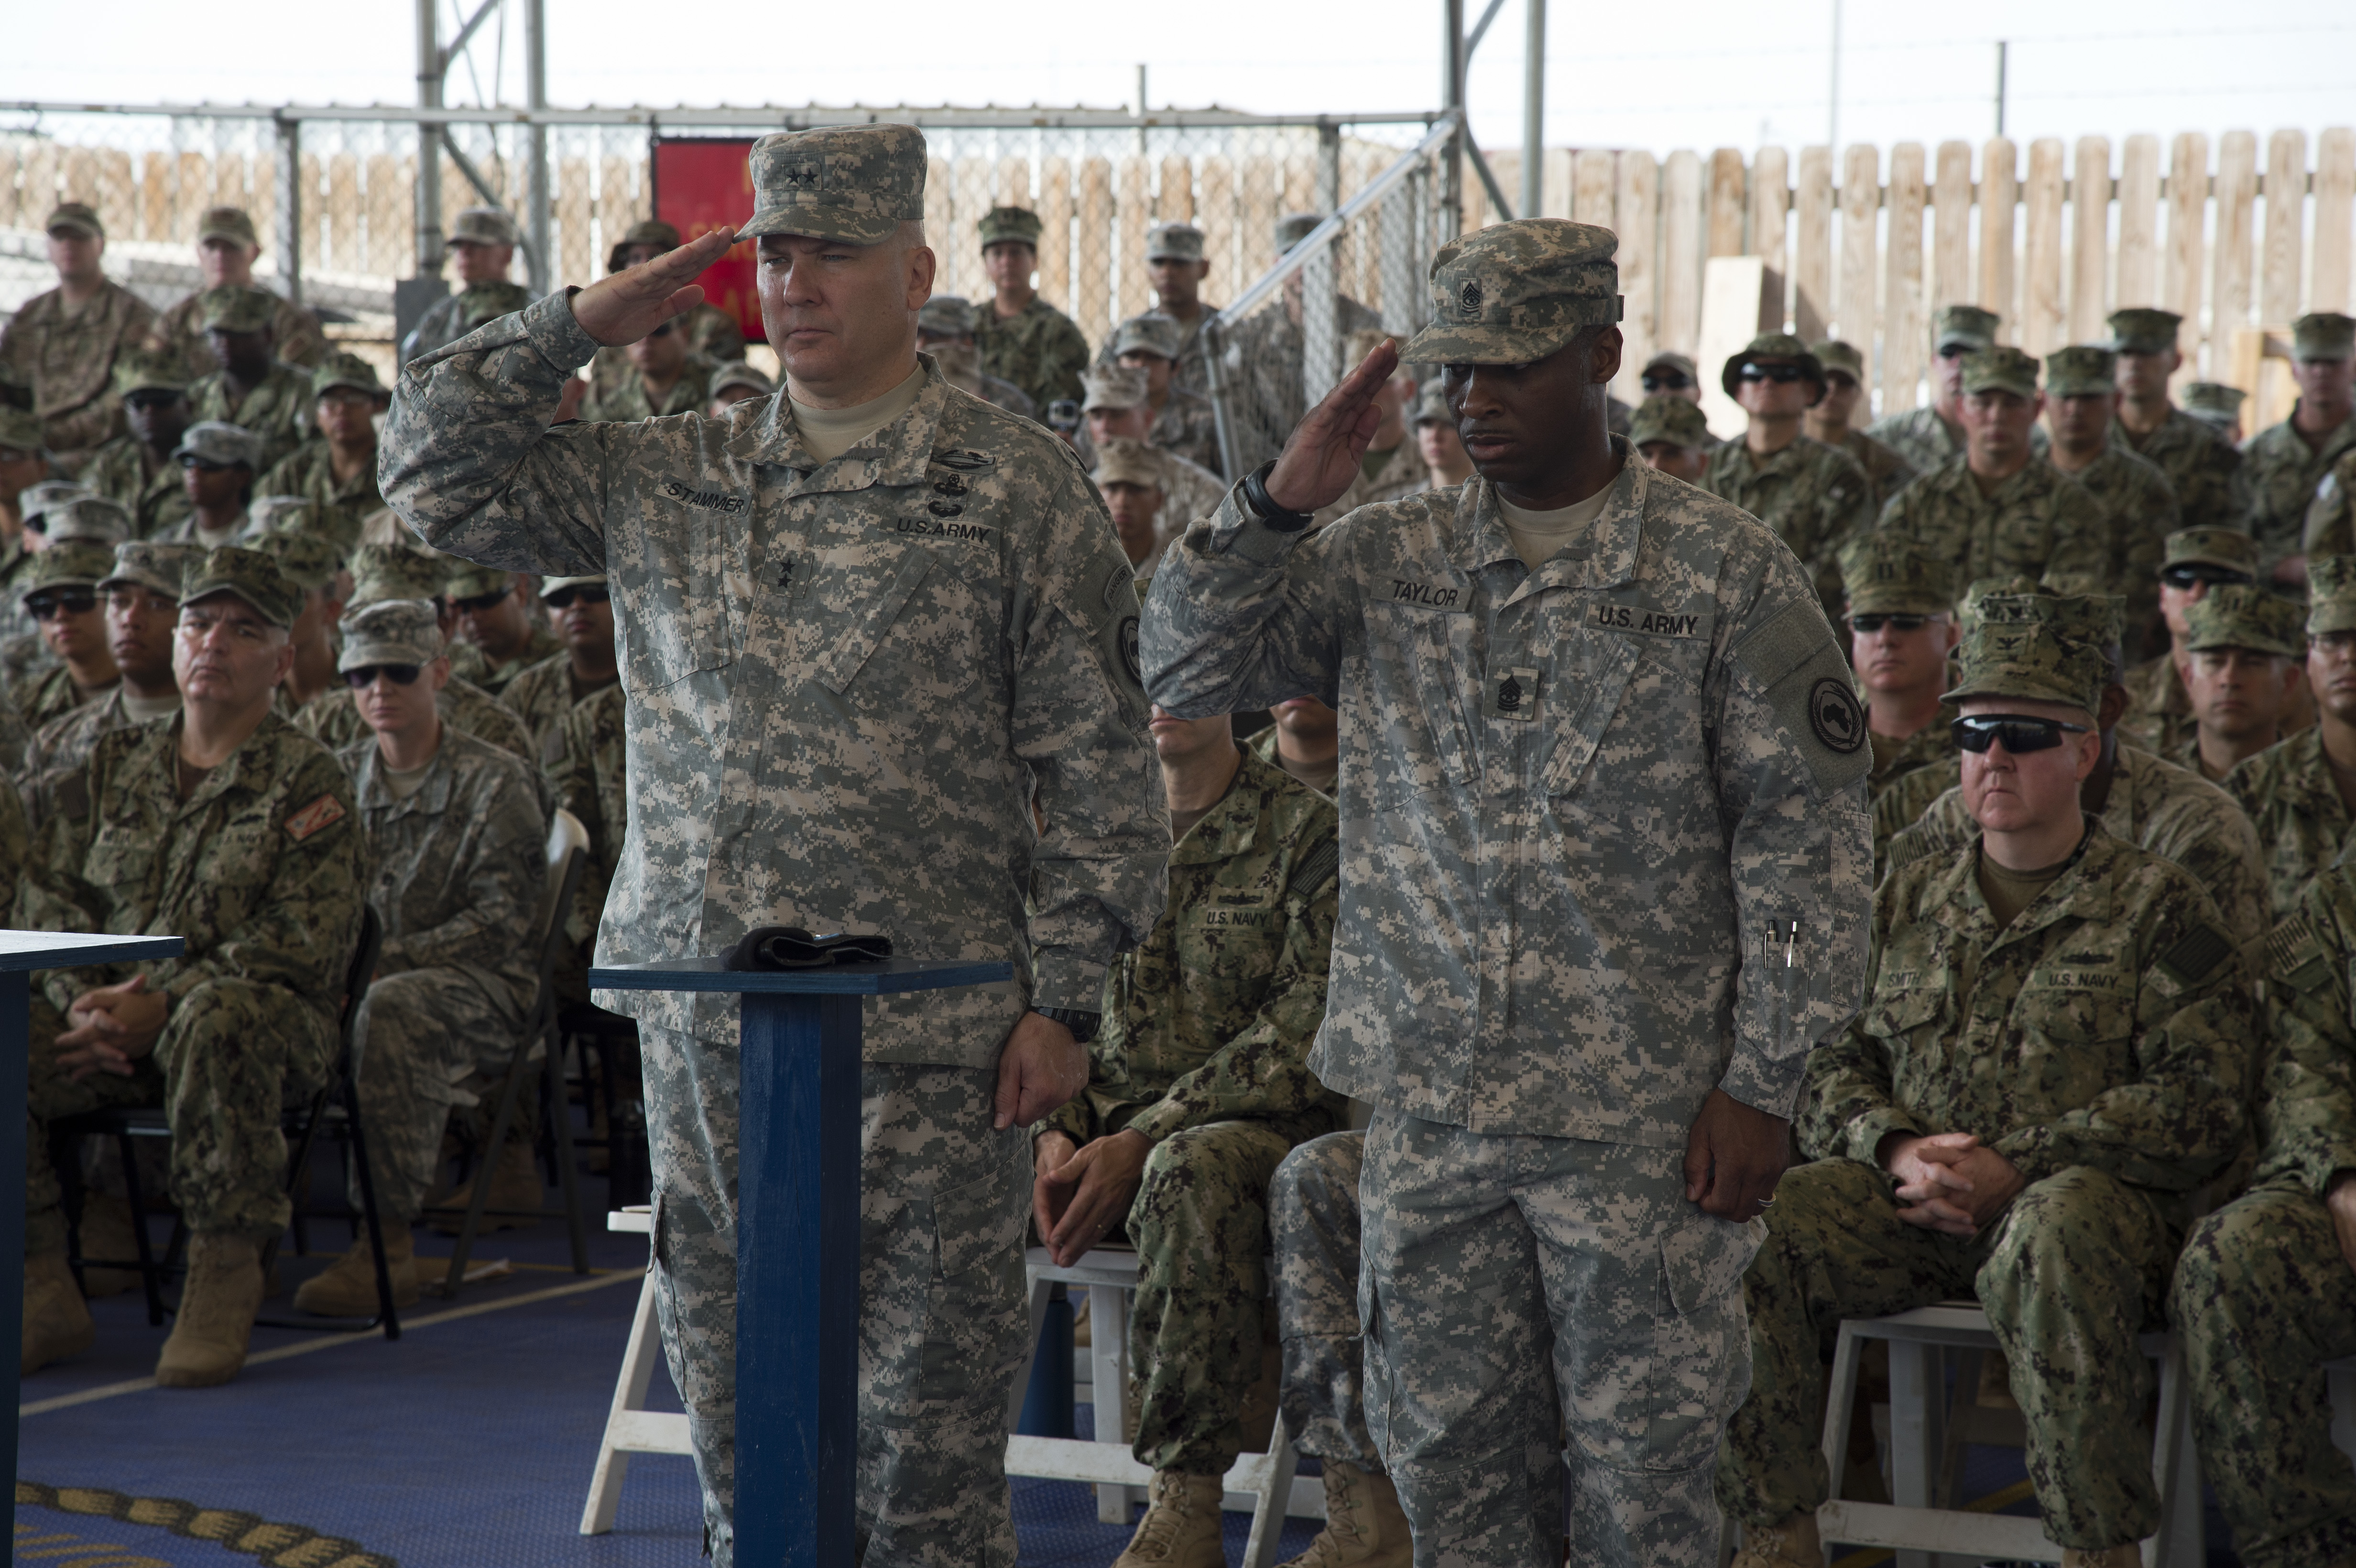 Maj. Gen. Mark Stammer, Combined Joint Task Force-Horn of Africa commander, and Sgt. Maj. Claudell Taylor, CJTF-HOA senior enlisted leader, salute a Memorial Day display at CJTF-HOA, Djibouti, May 25, 2015. The display was in honor of U.S. military personnel who have died in service to their country. (U.S. Air Force photo by Staff Sgt. Nathan Maysonet)